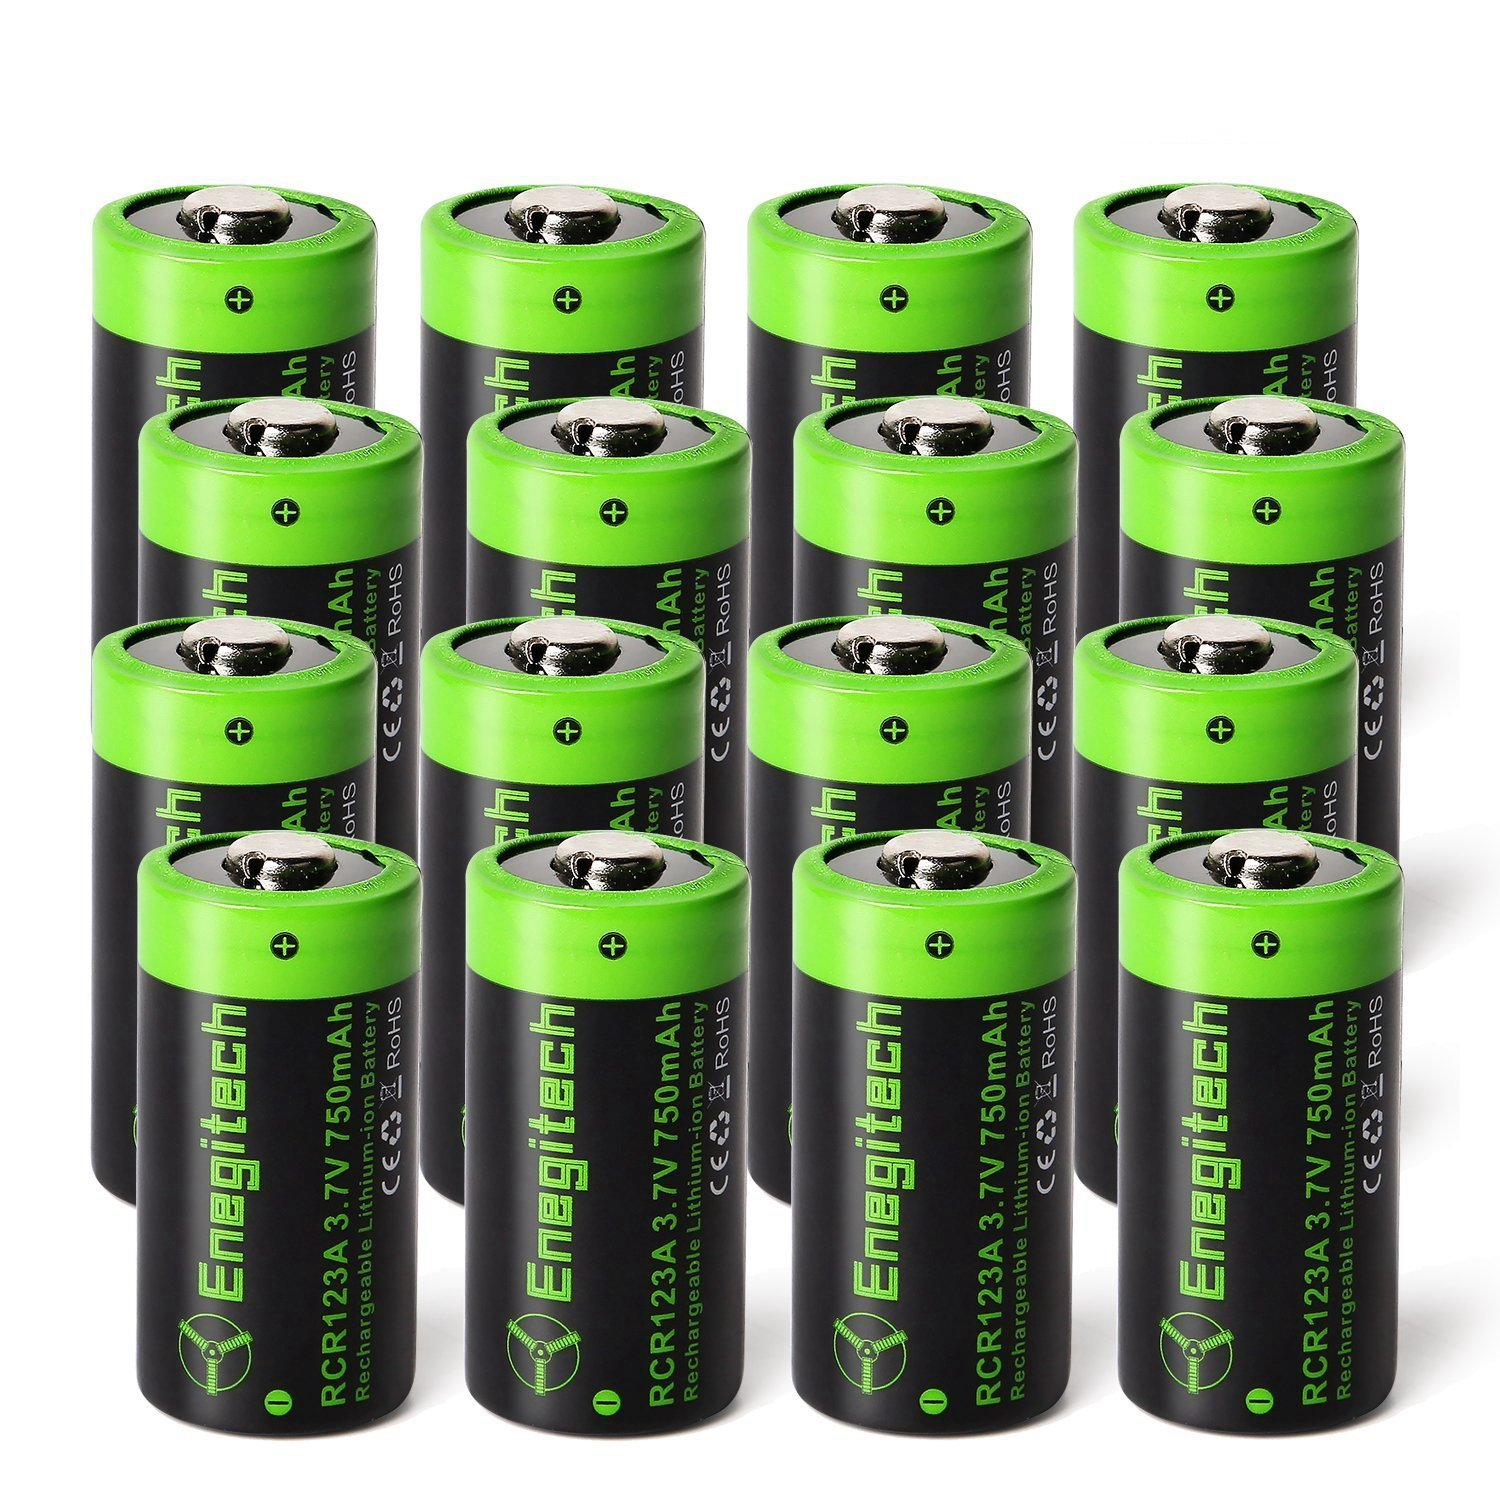 Enegitech 16 Pack CR123A Rechargeable Batteries 3.7V 750mAh RCR123A 16340 Li-ion Battery for Arlo Cameras, Flashlight, Security System